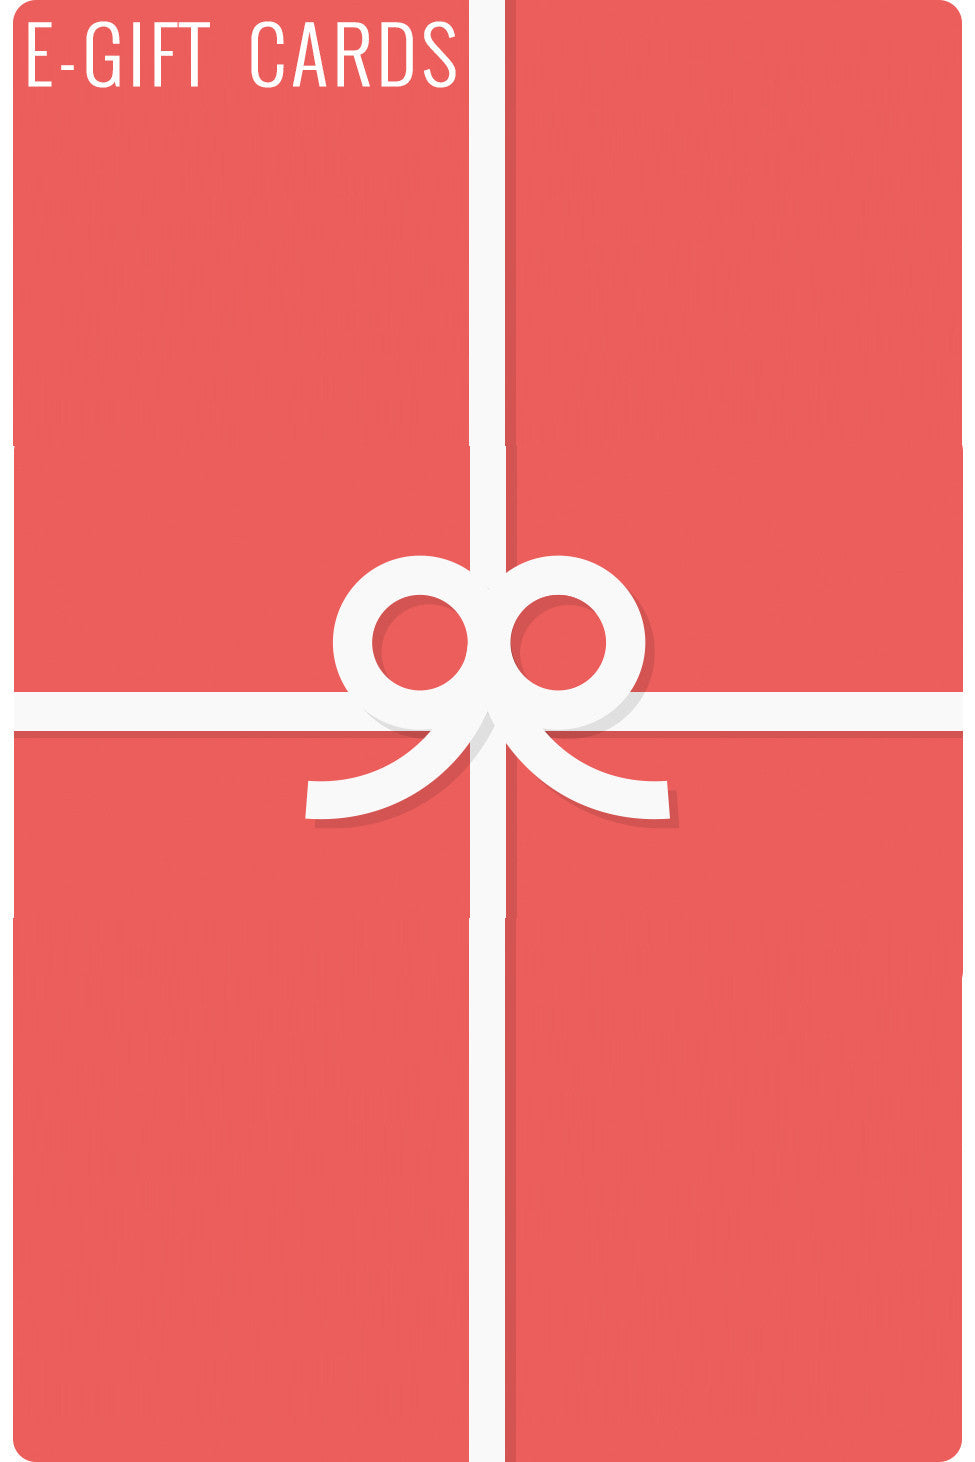 E-Gift Card Gift Card - Shop Zealous Training Swimwear